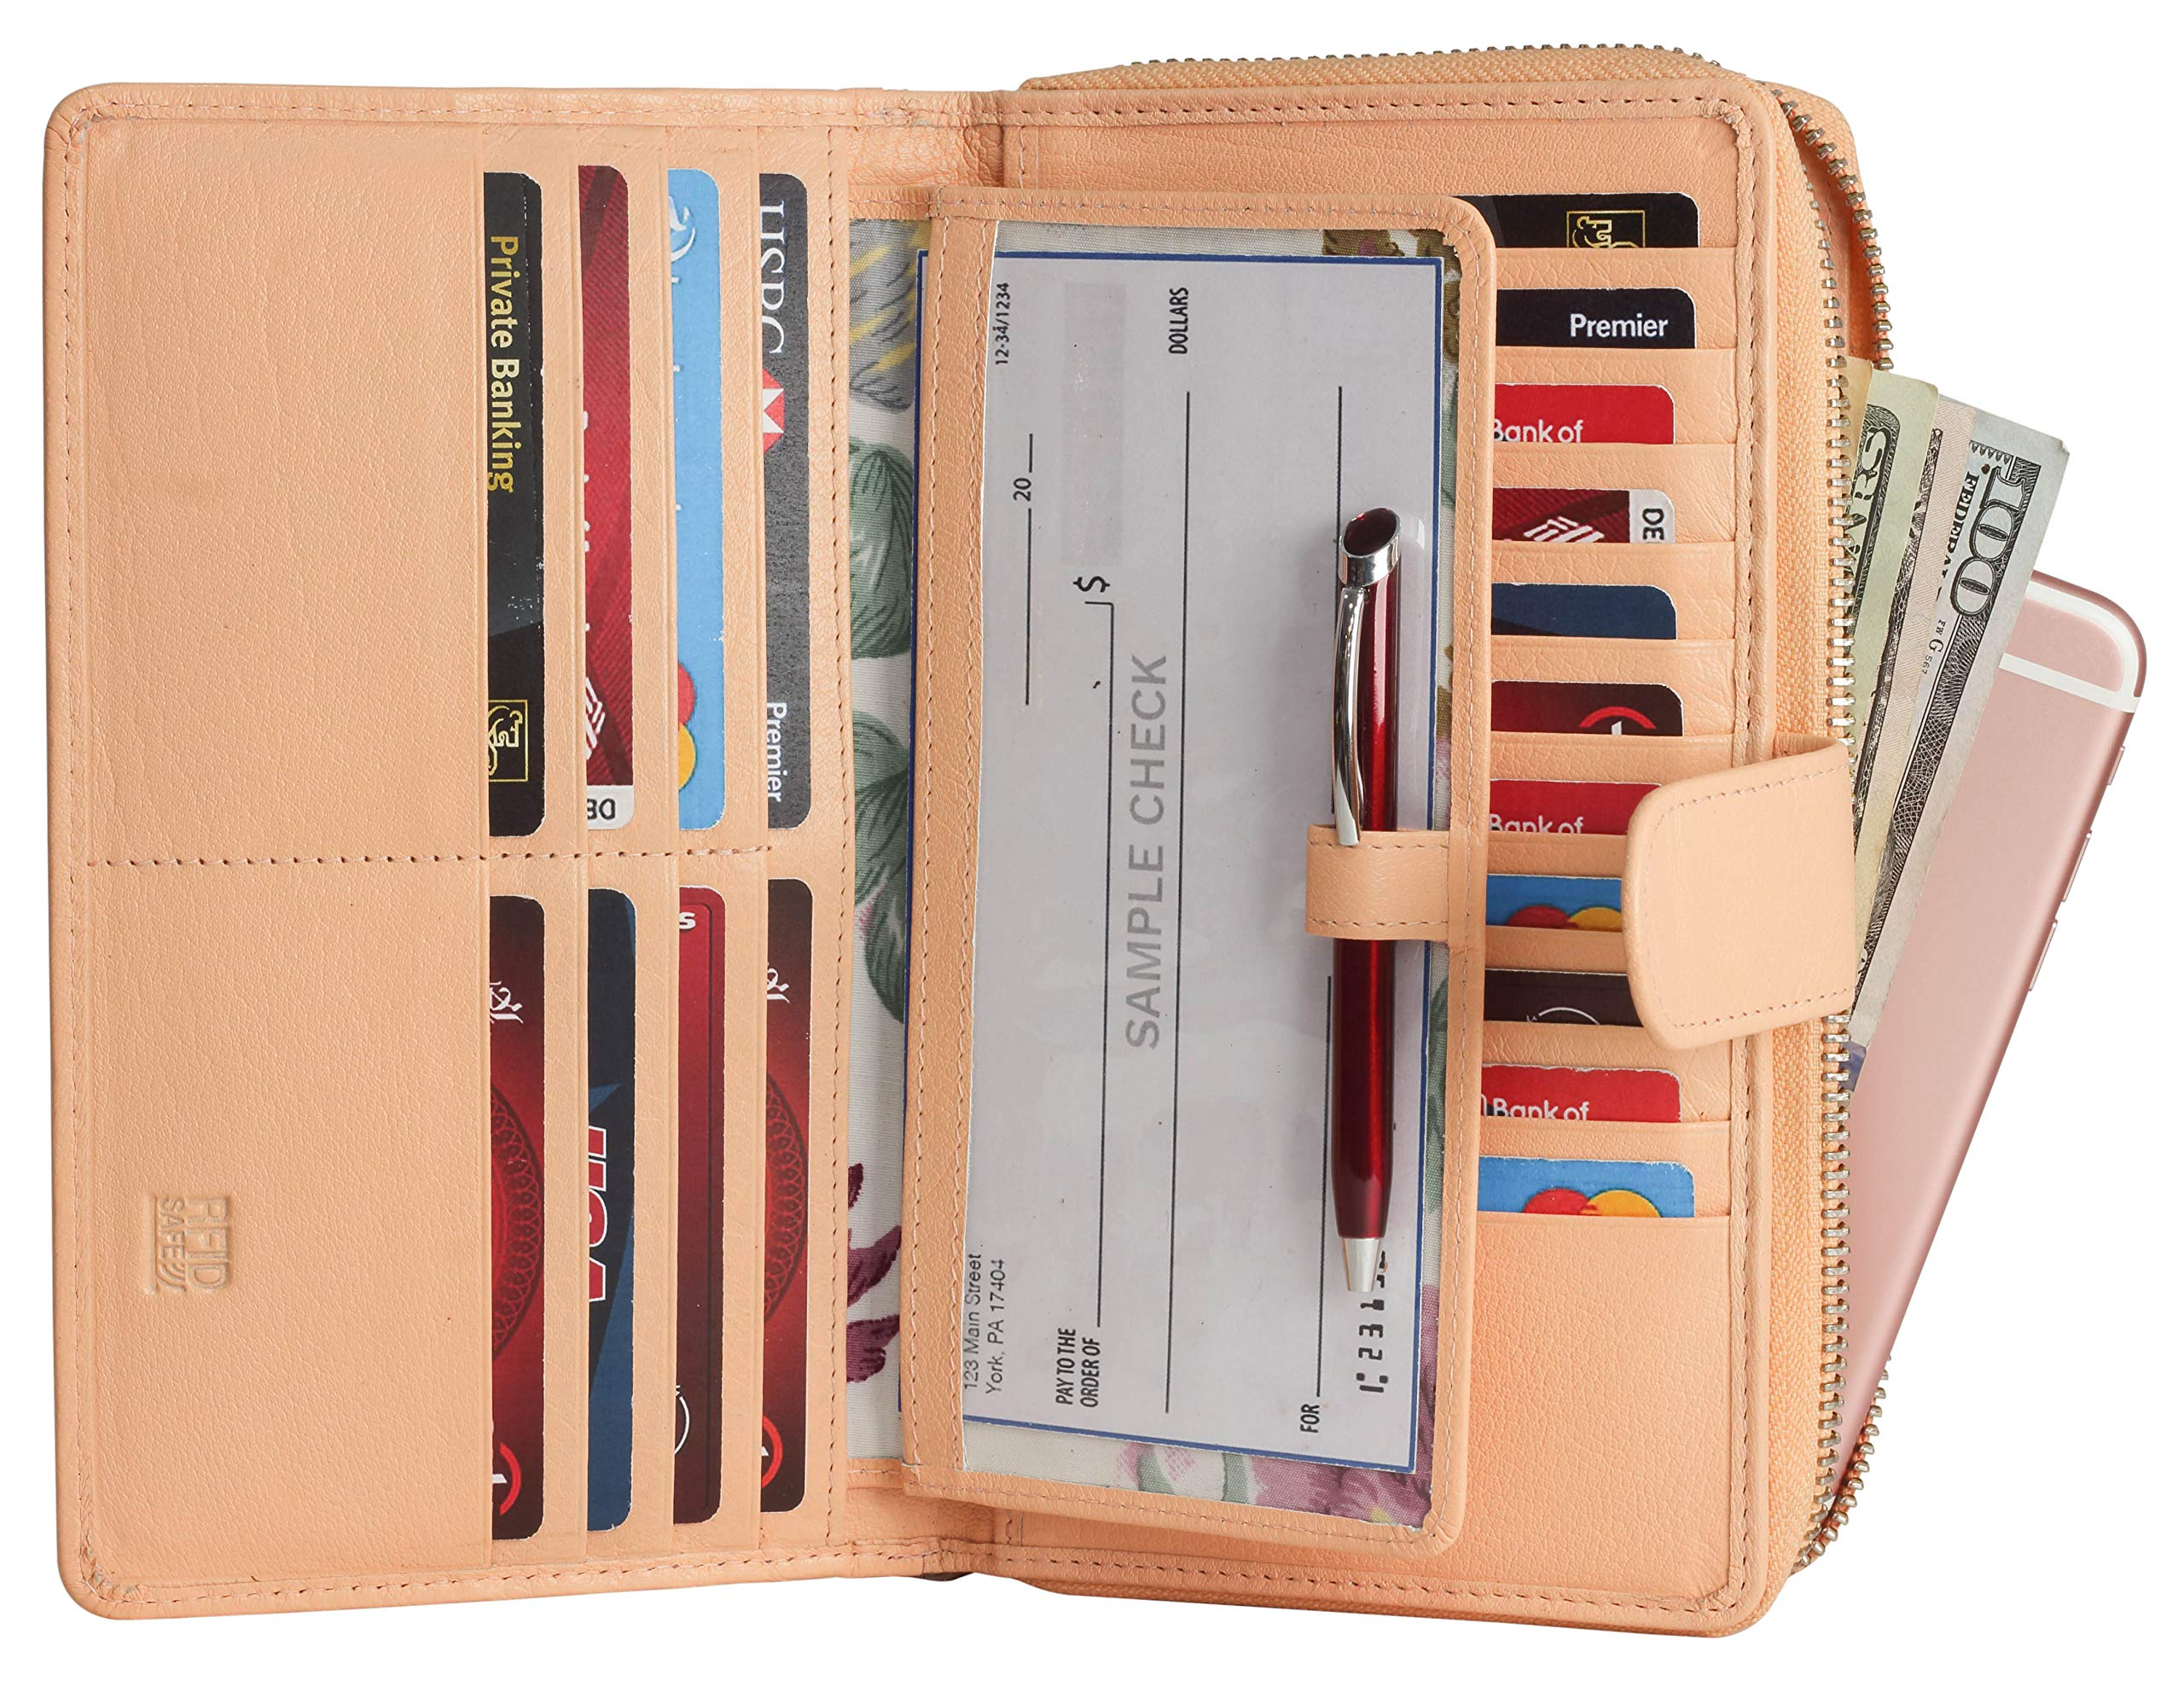 Mou Meraki Big Fat RFID Blocking Leather Organizer Checkbook Wallets For Women - Clutch